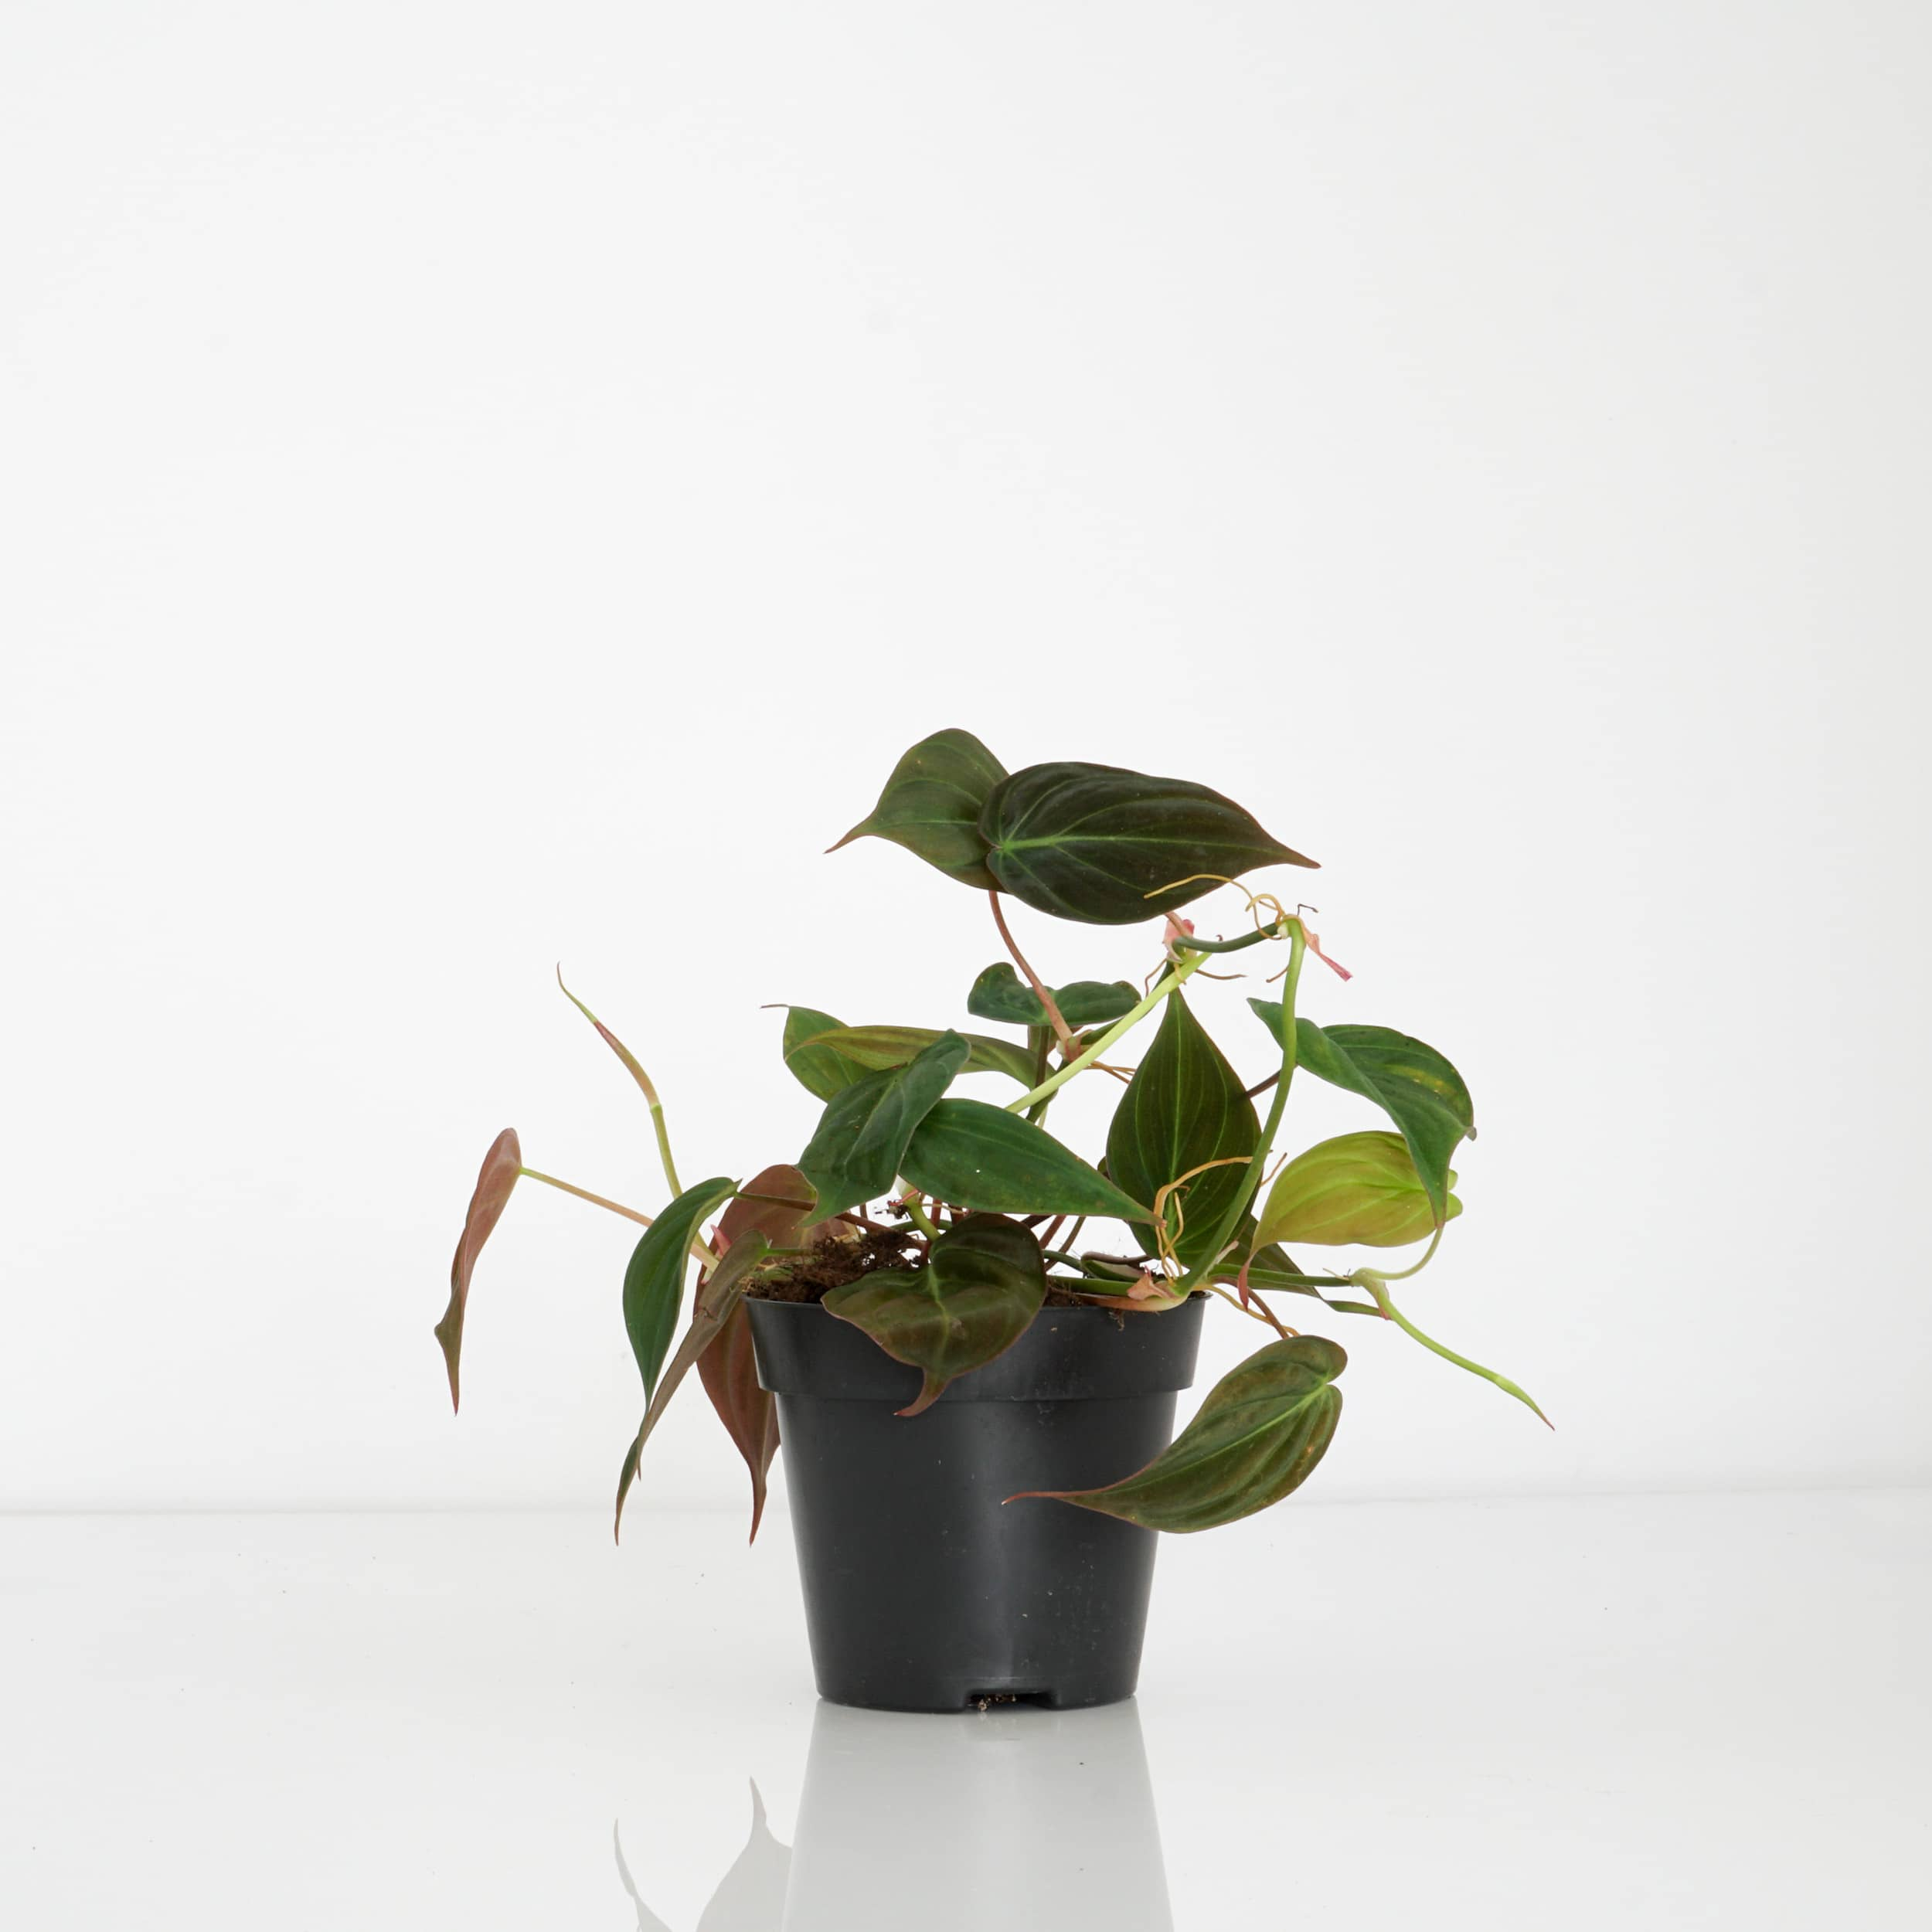 Philodendron scandens subsp. micans - Kletterphilodendron